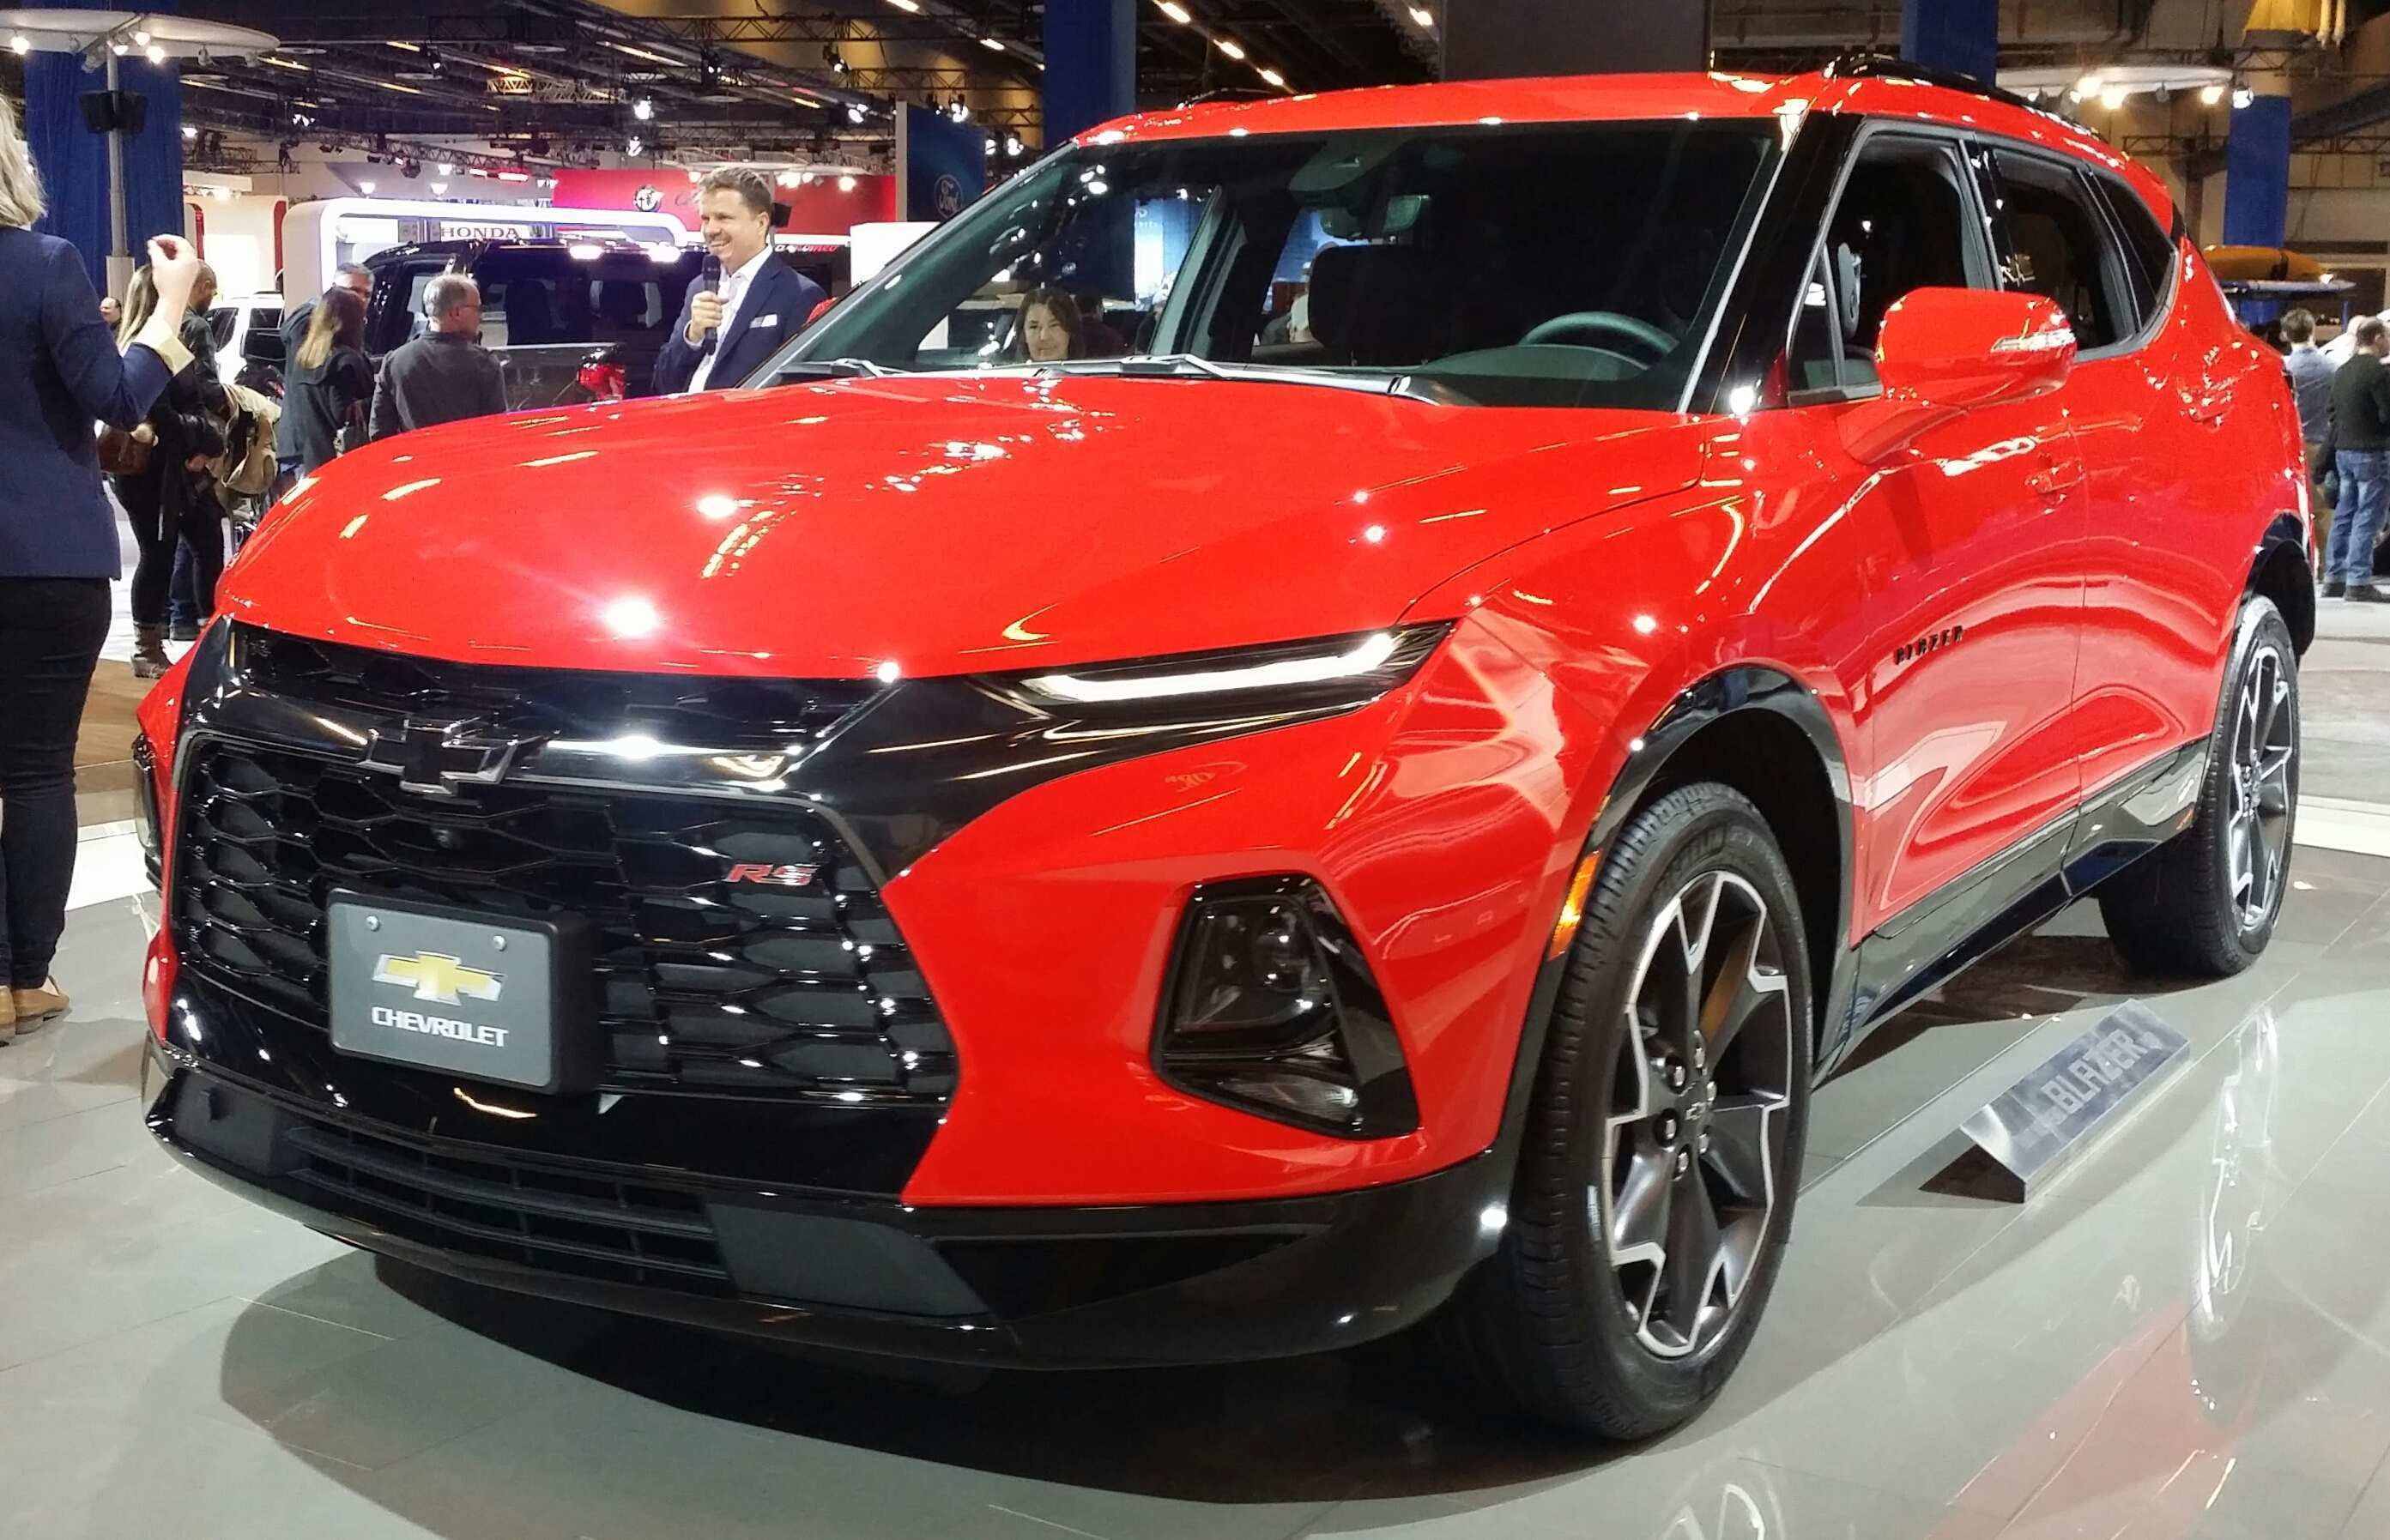 18 All New Chevrolet Blazer 2020 Ss With 500Hp Pricing